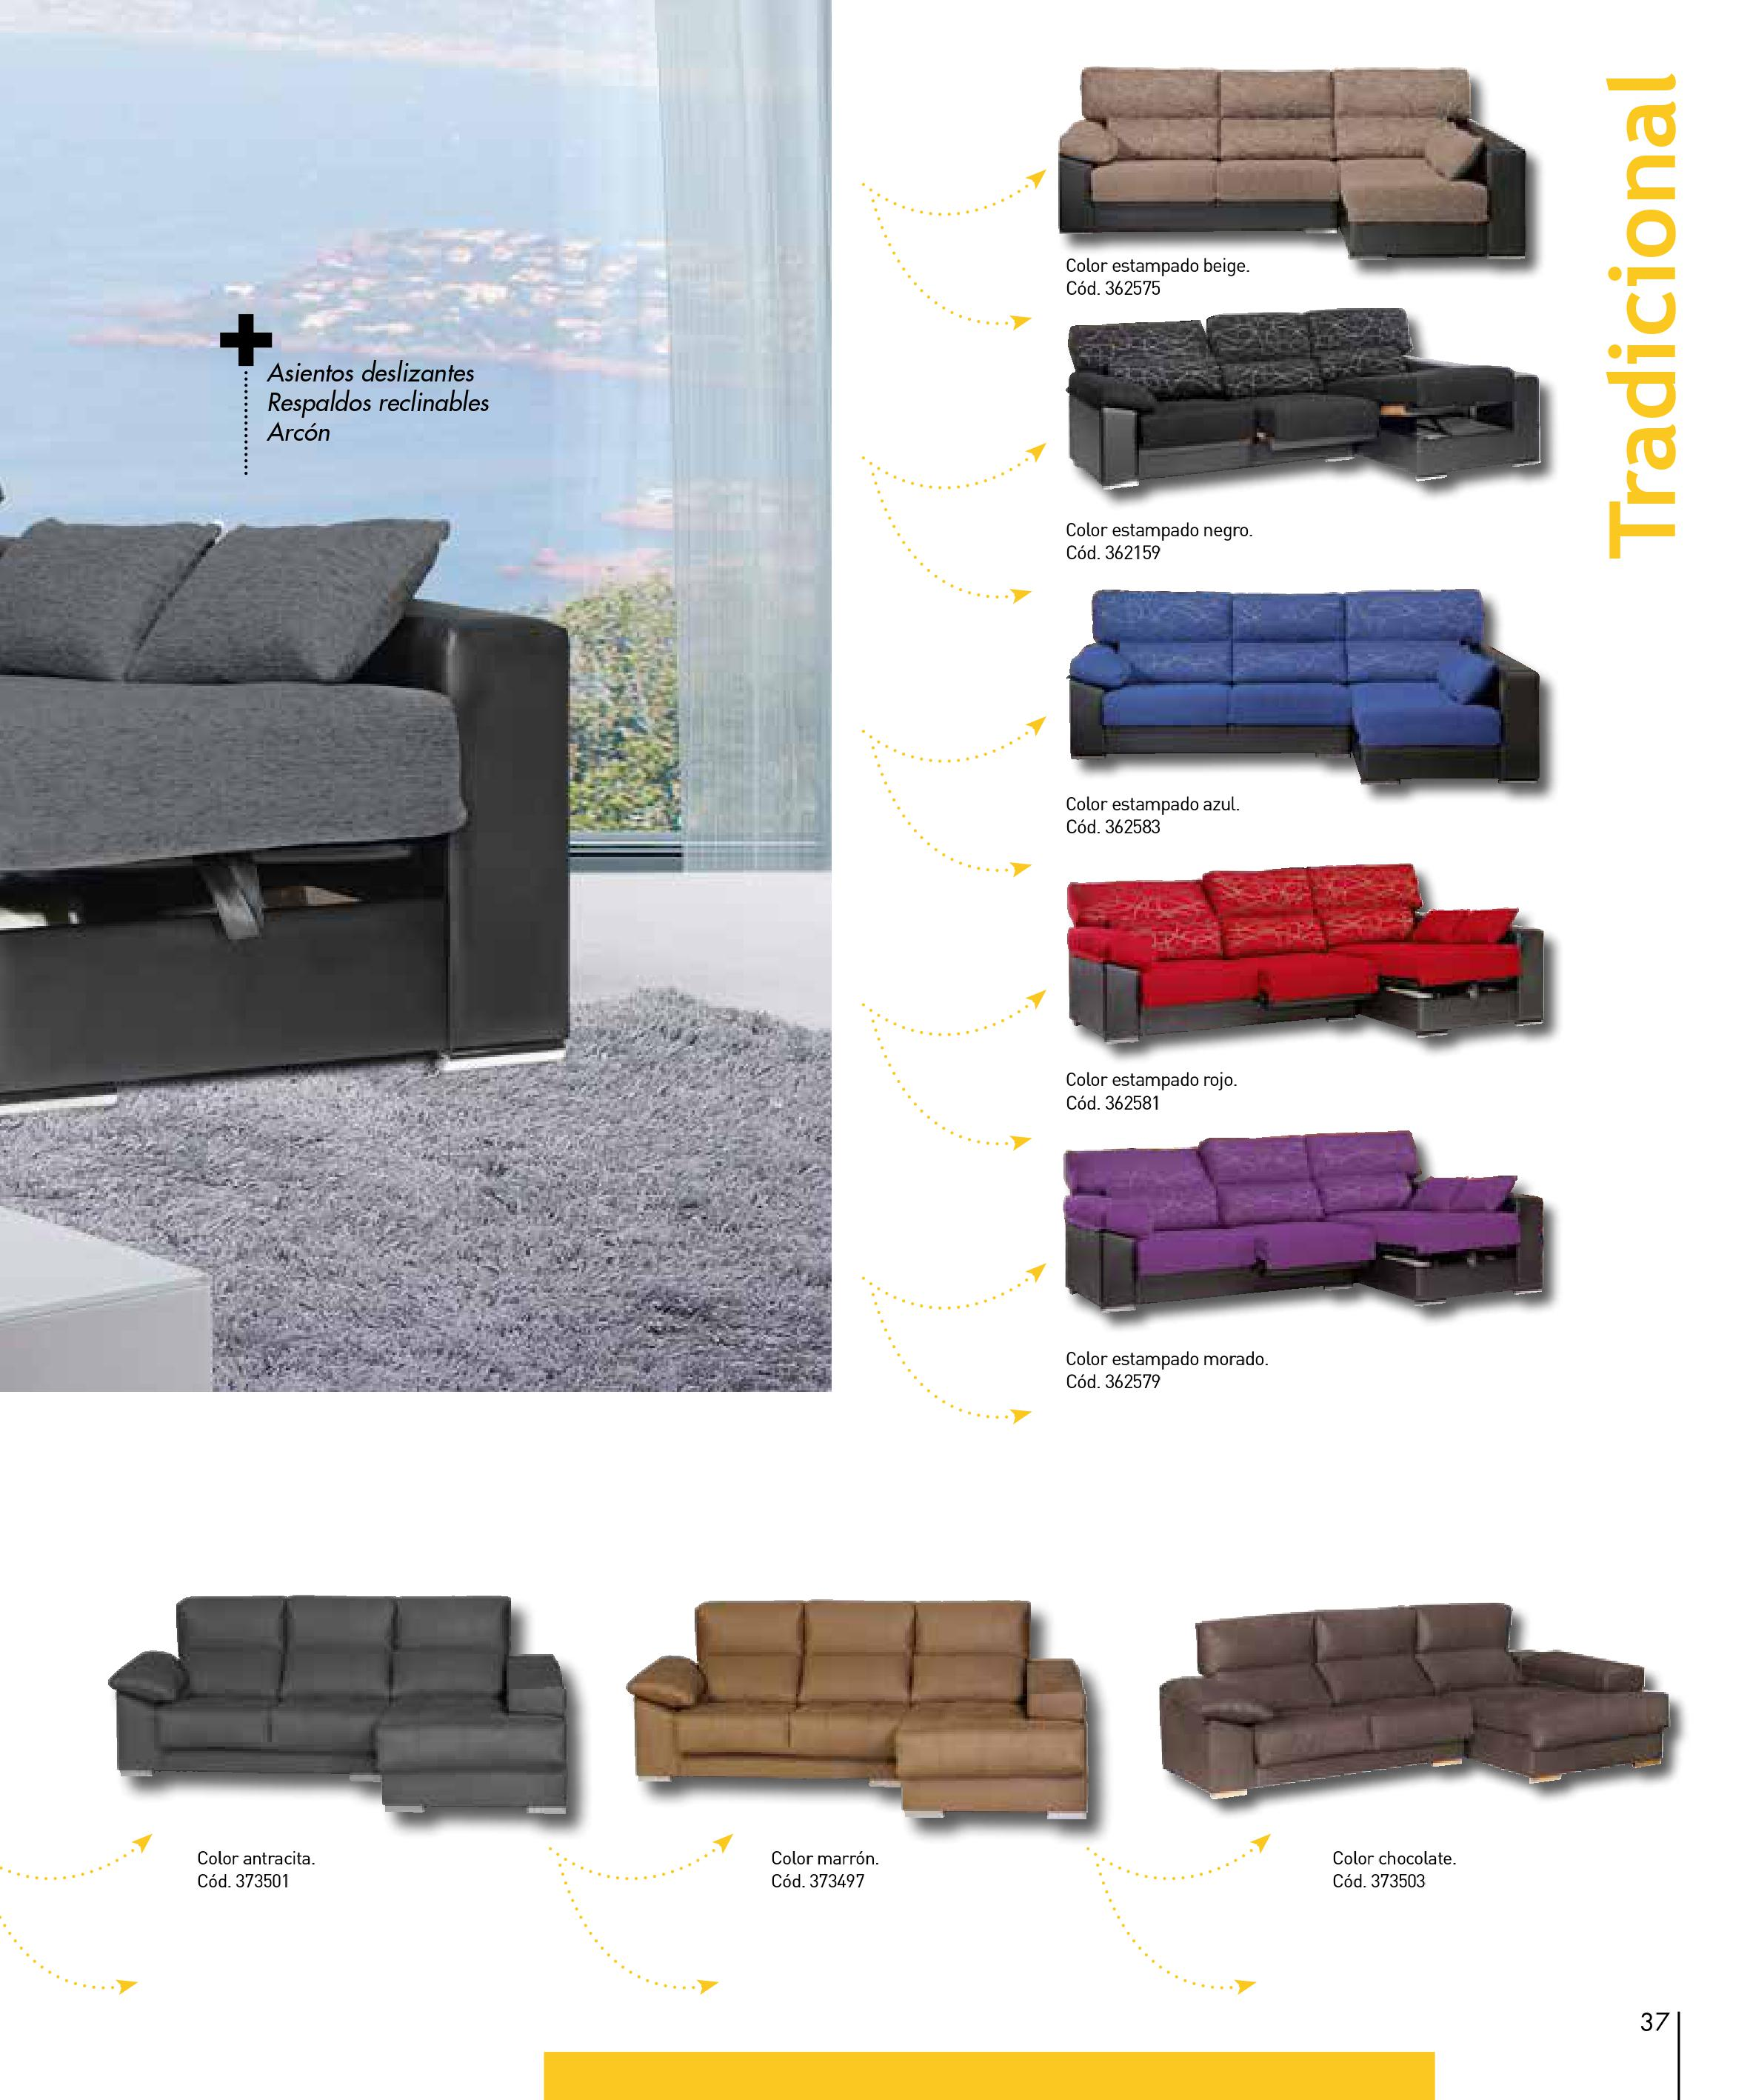 Sofas conforama 201537 for Sofas conforama catalogo